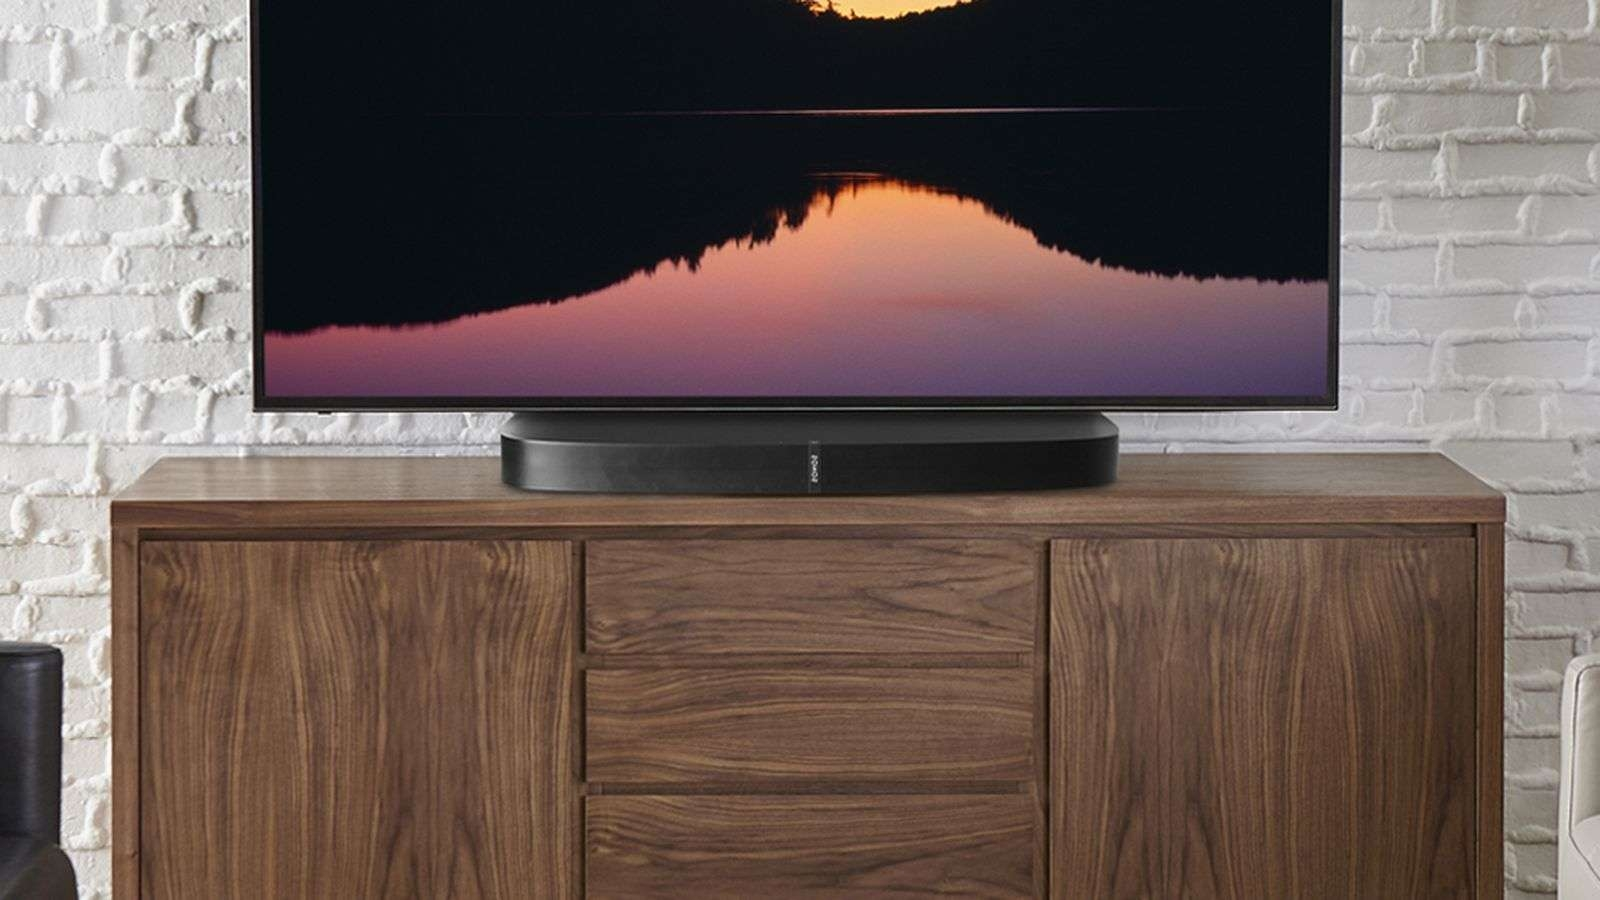 Sonos Playbase Gets $150 Stand For Tvs That Won't Fit – Cnet Regarding Sonos Tv Stands (View 12 of 15)